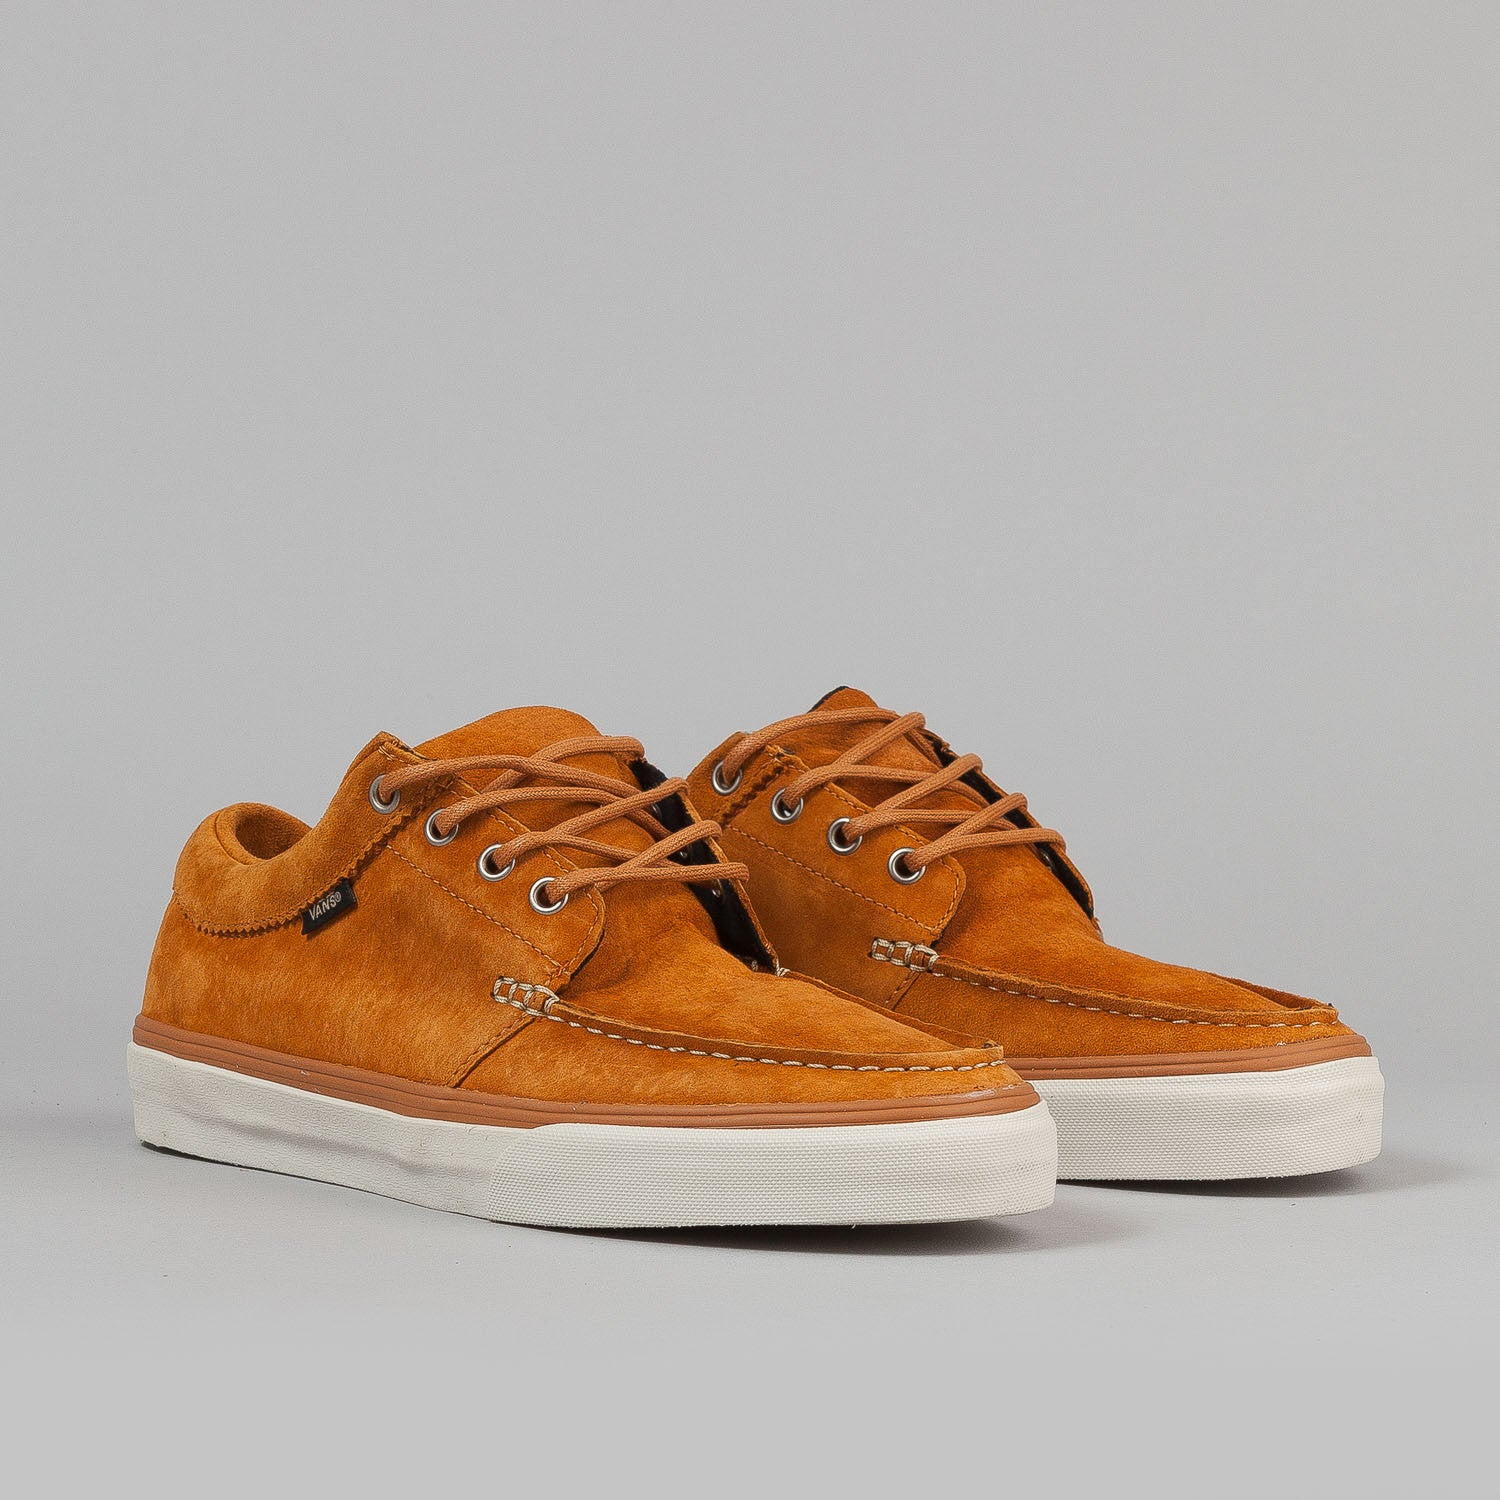 Vans 106 Moc CA Shoes - Sudan Brown